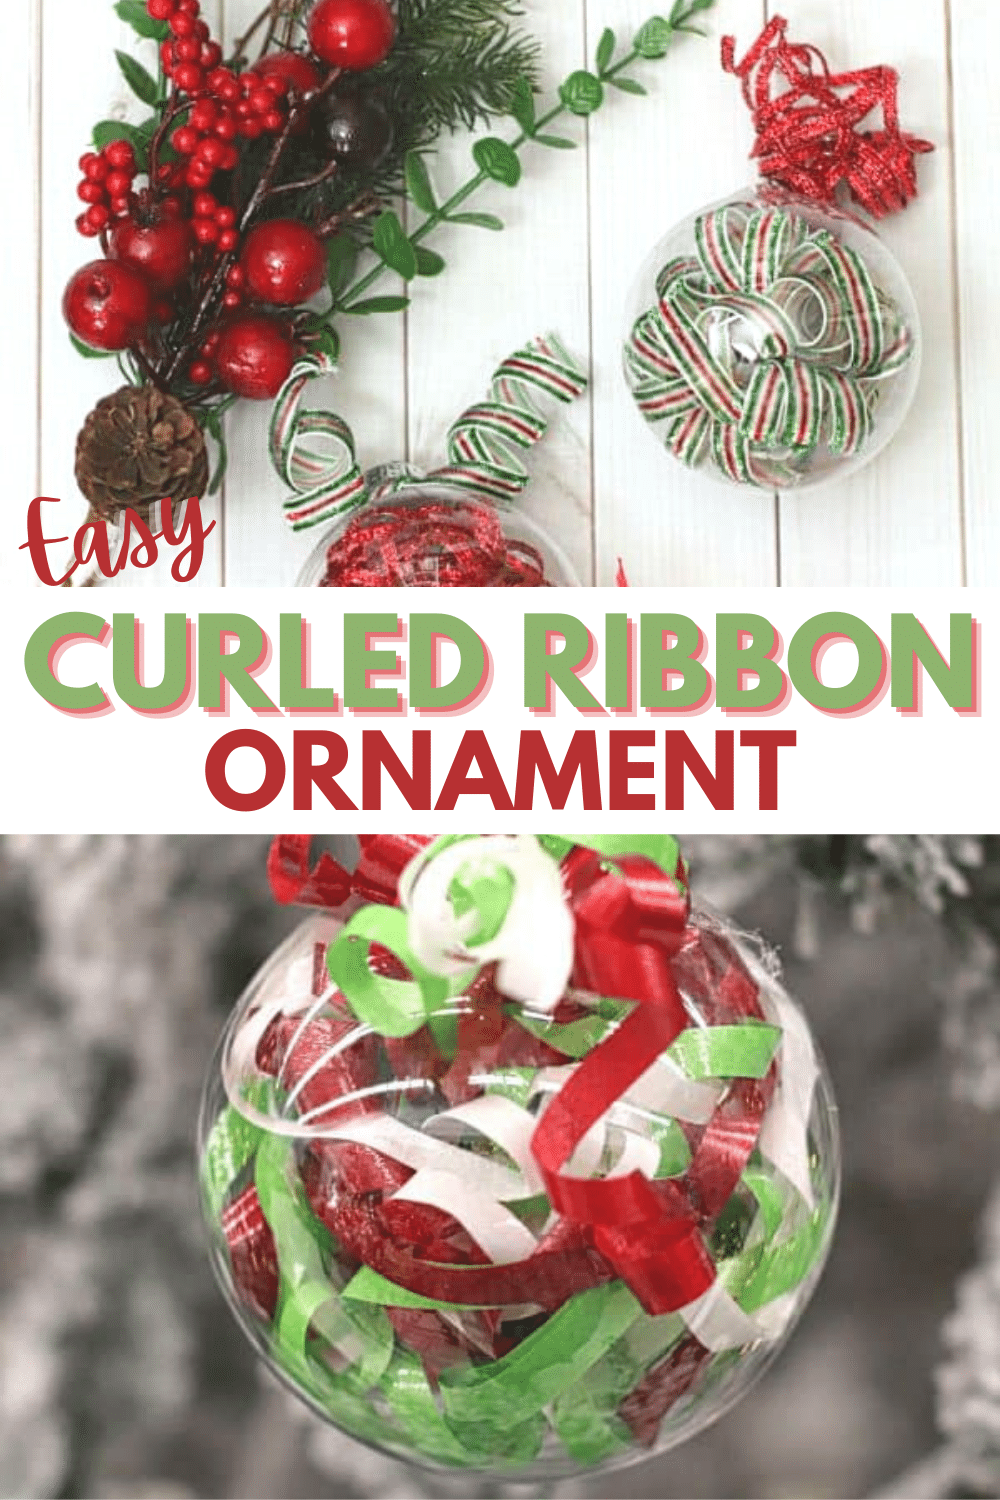 These curled ribbon ornaments are so festive and pretty, it's hard to believe they're so easy that you can make them in just minutes! #ornaments #christmas #diy via @wondermomwannab